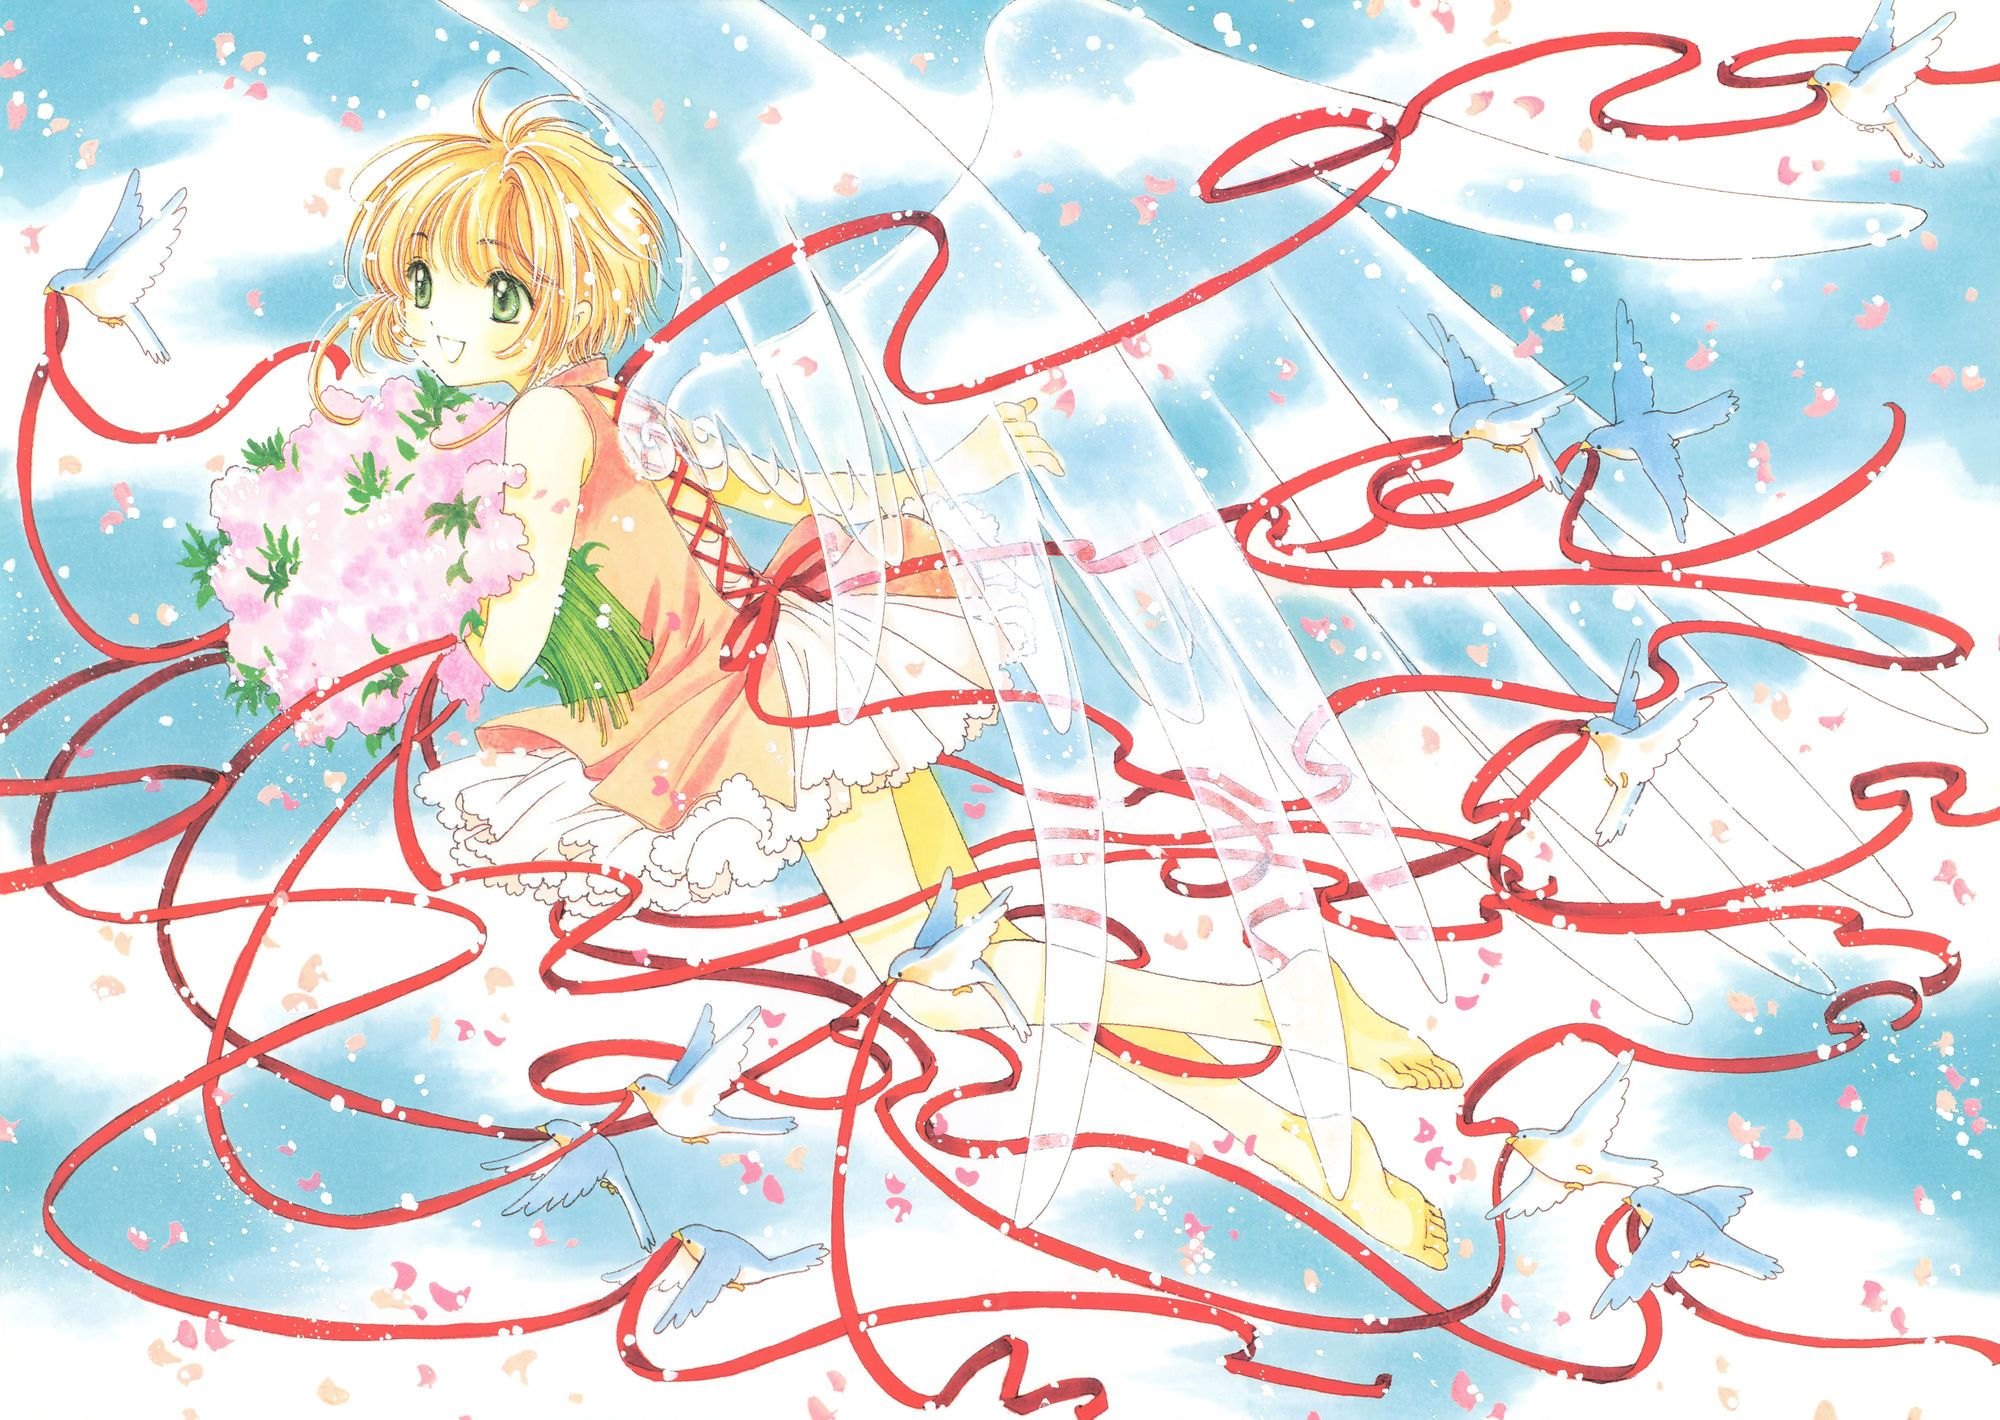 Chapter 50 Is The Chapter Of The Manga Cardcaptor Sakura Forming Part Of Volume 12 No Cards Were Featured In This Chapter Sakura Art Sakura Cardcaptor Sakura